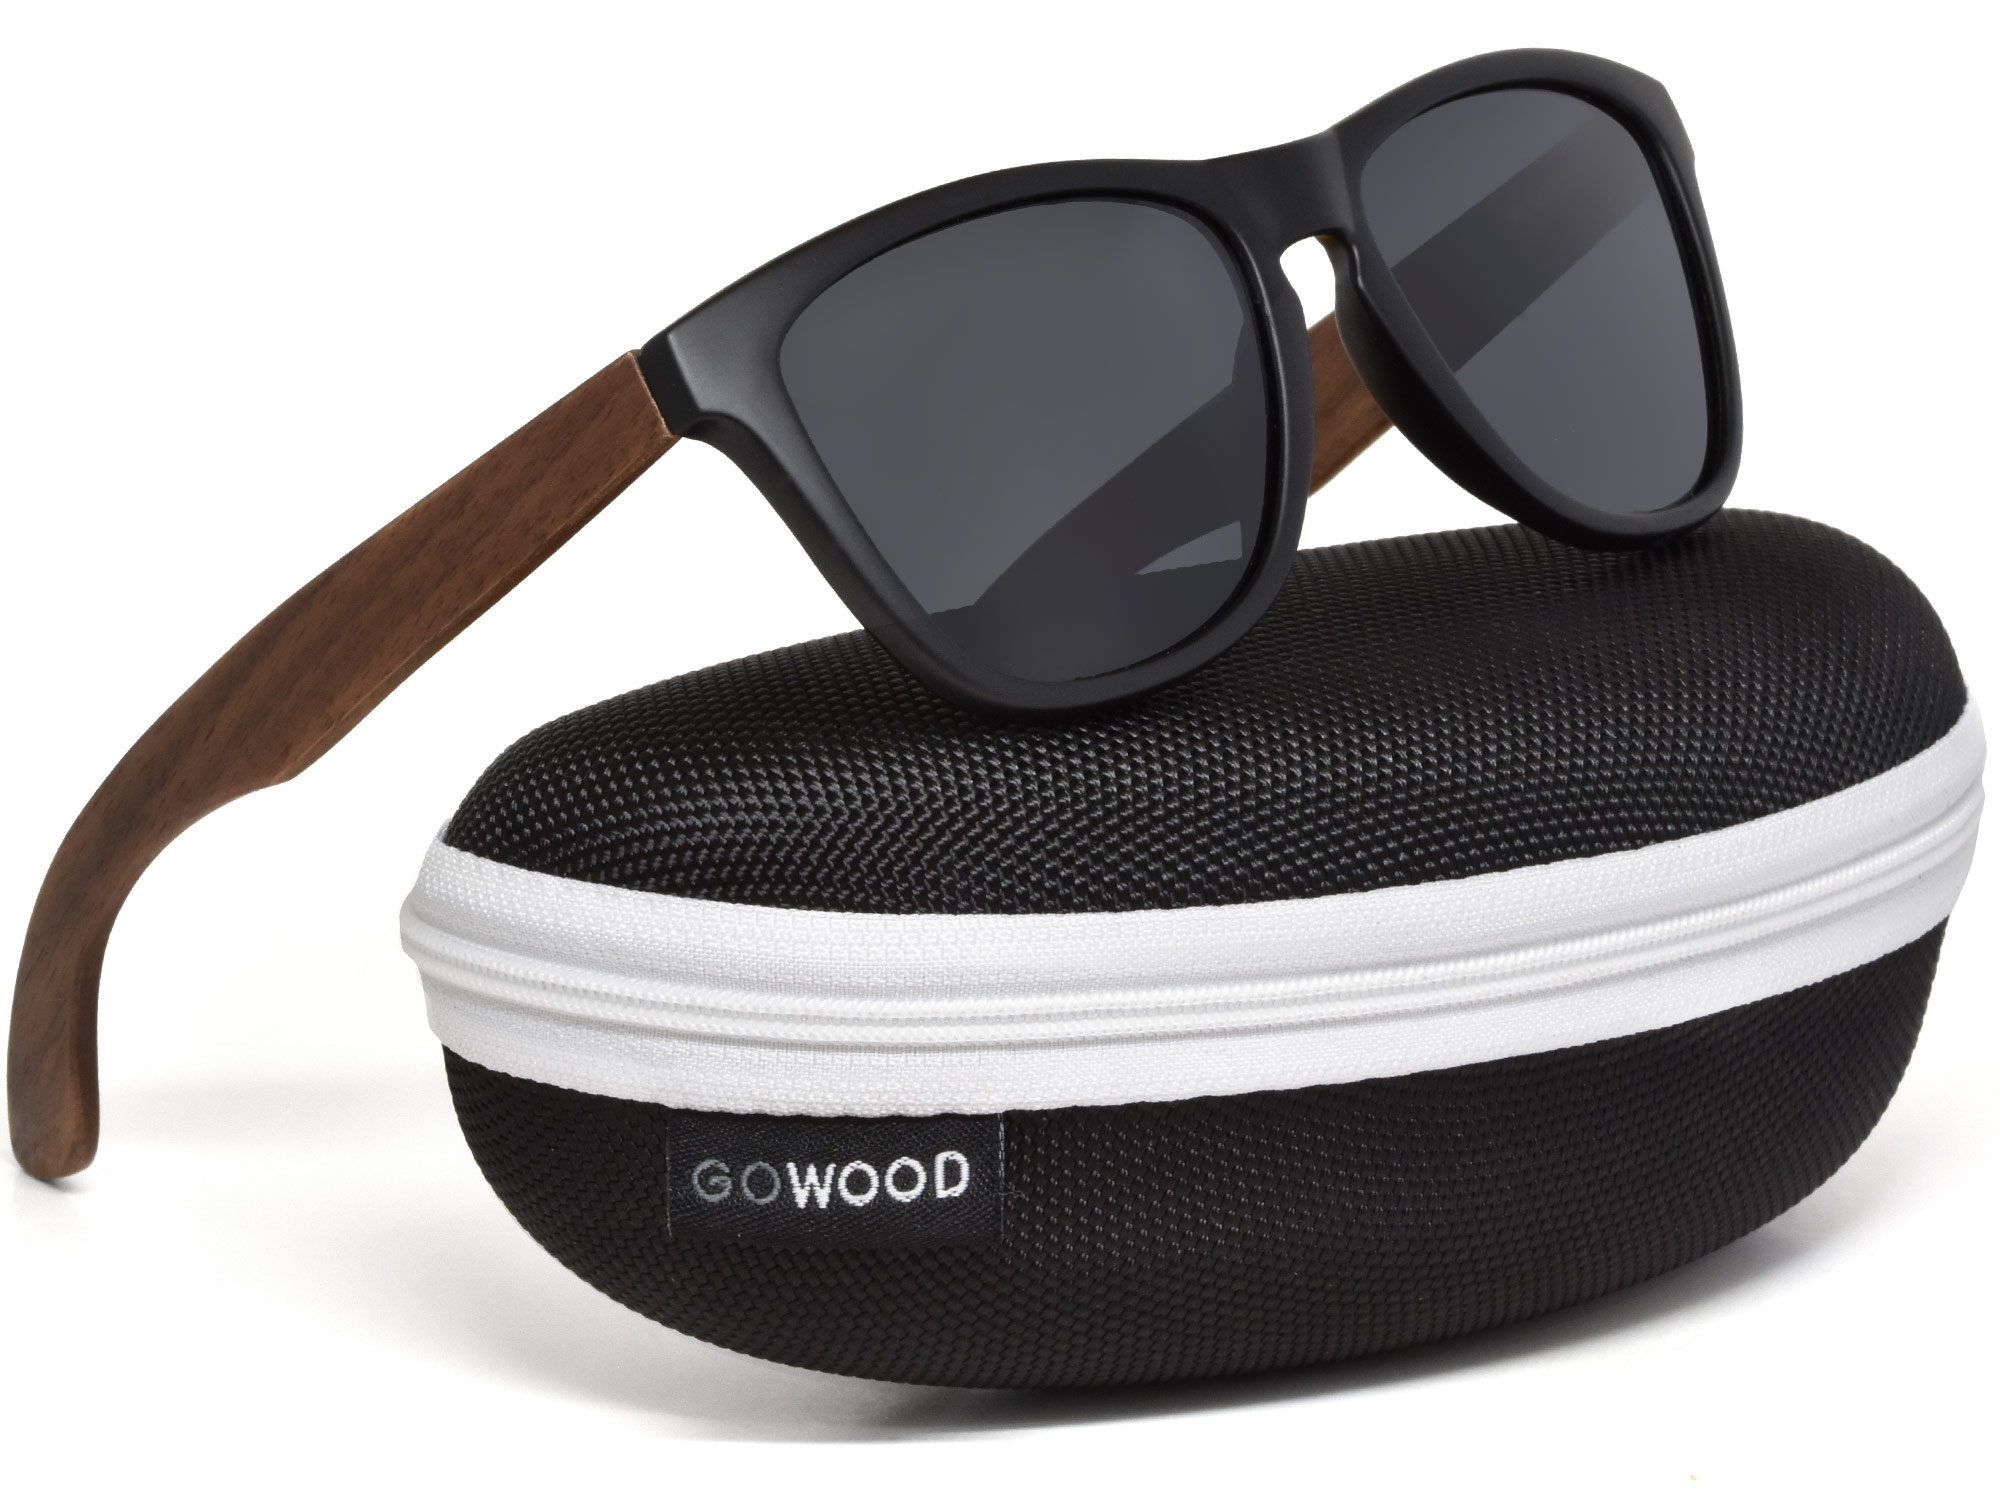 Classic walnut wood sunglasses with black polarized lenses in a zipper case